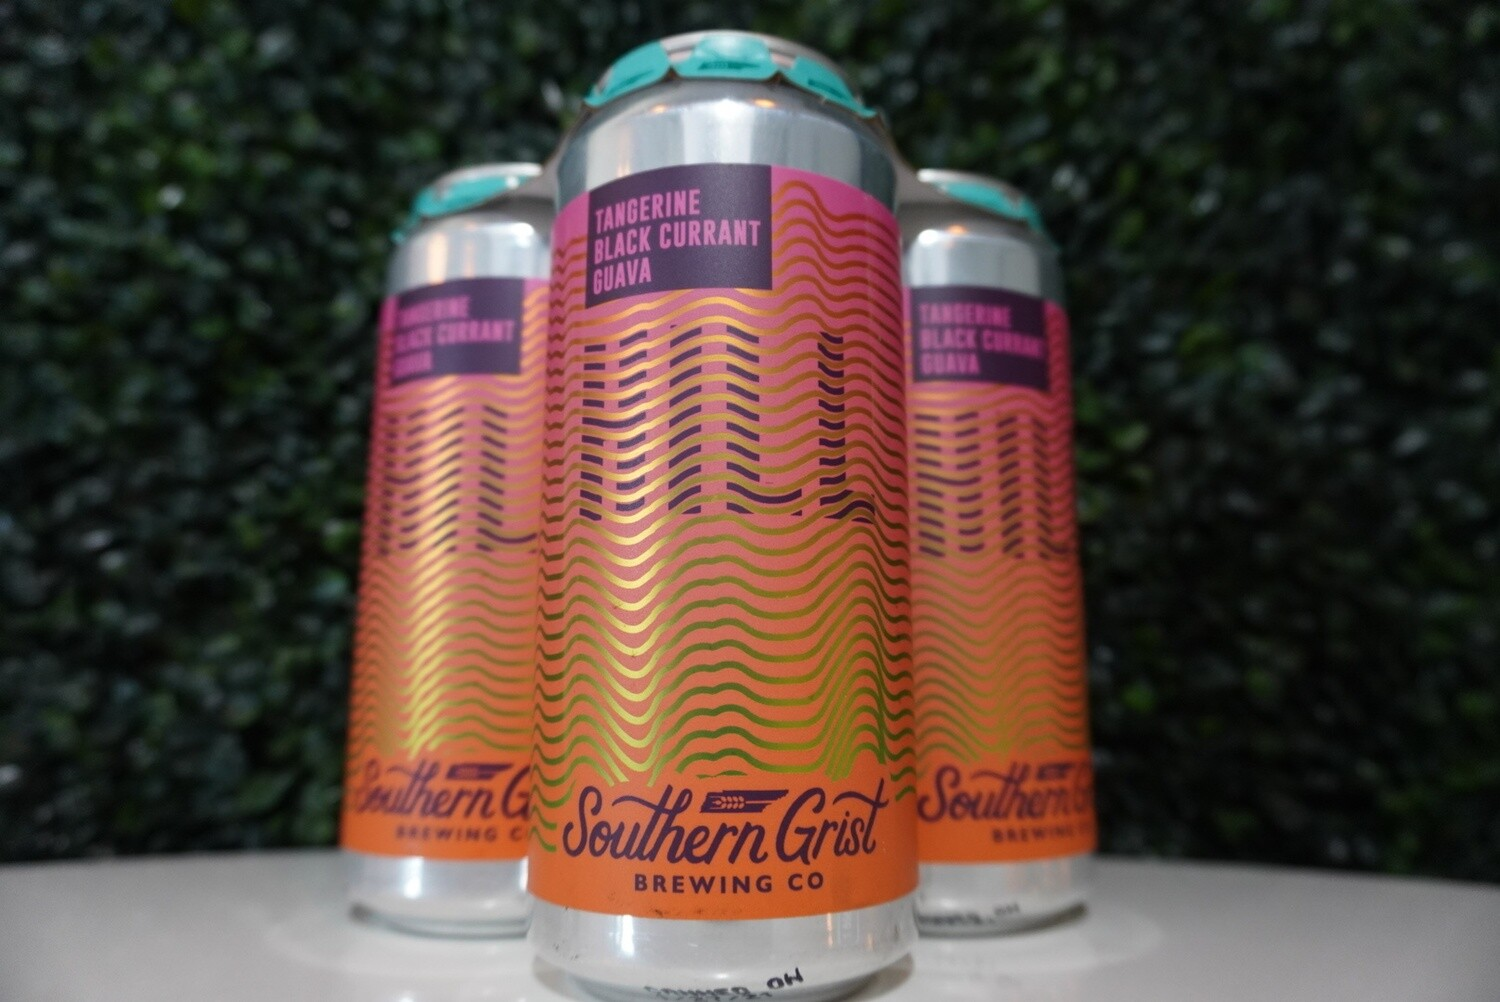 Southern Grist - Tangerine Black Currant Guava Hill - Fruited Sour - 5.4% ABV - 16oz Can